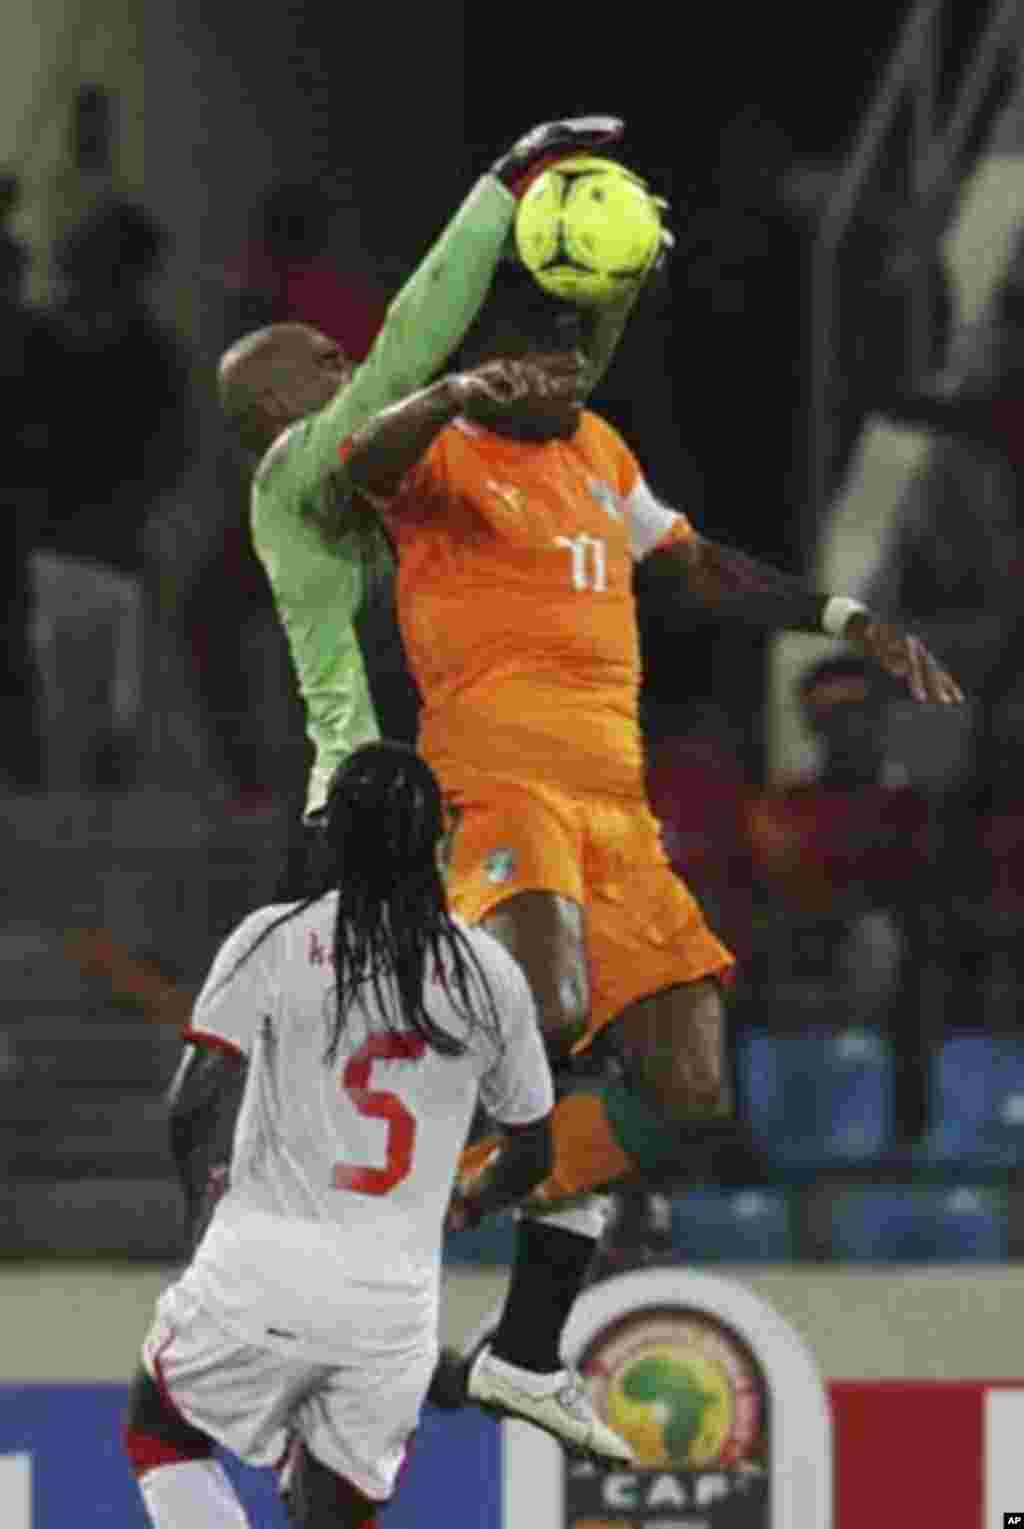 Didier Drogba (R) of Ivory Coast fights for the ball with Danilo of Equatorial Guinea (L) during their quarter-final match at the African Nations Cup soccer tournament in Malabo February 4, 2012